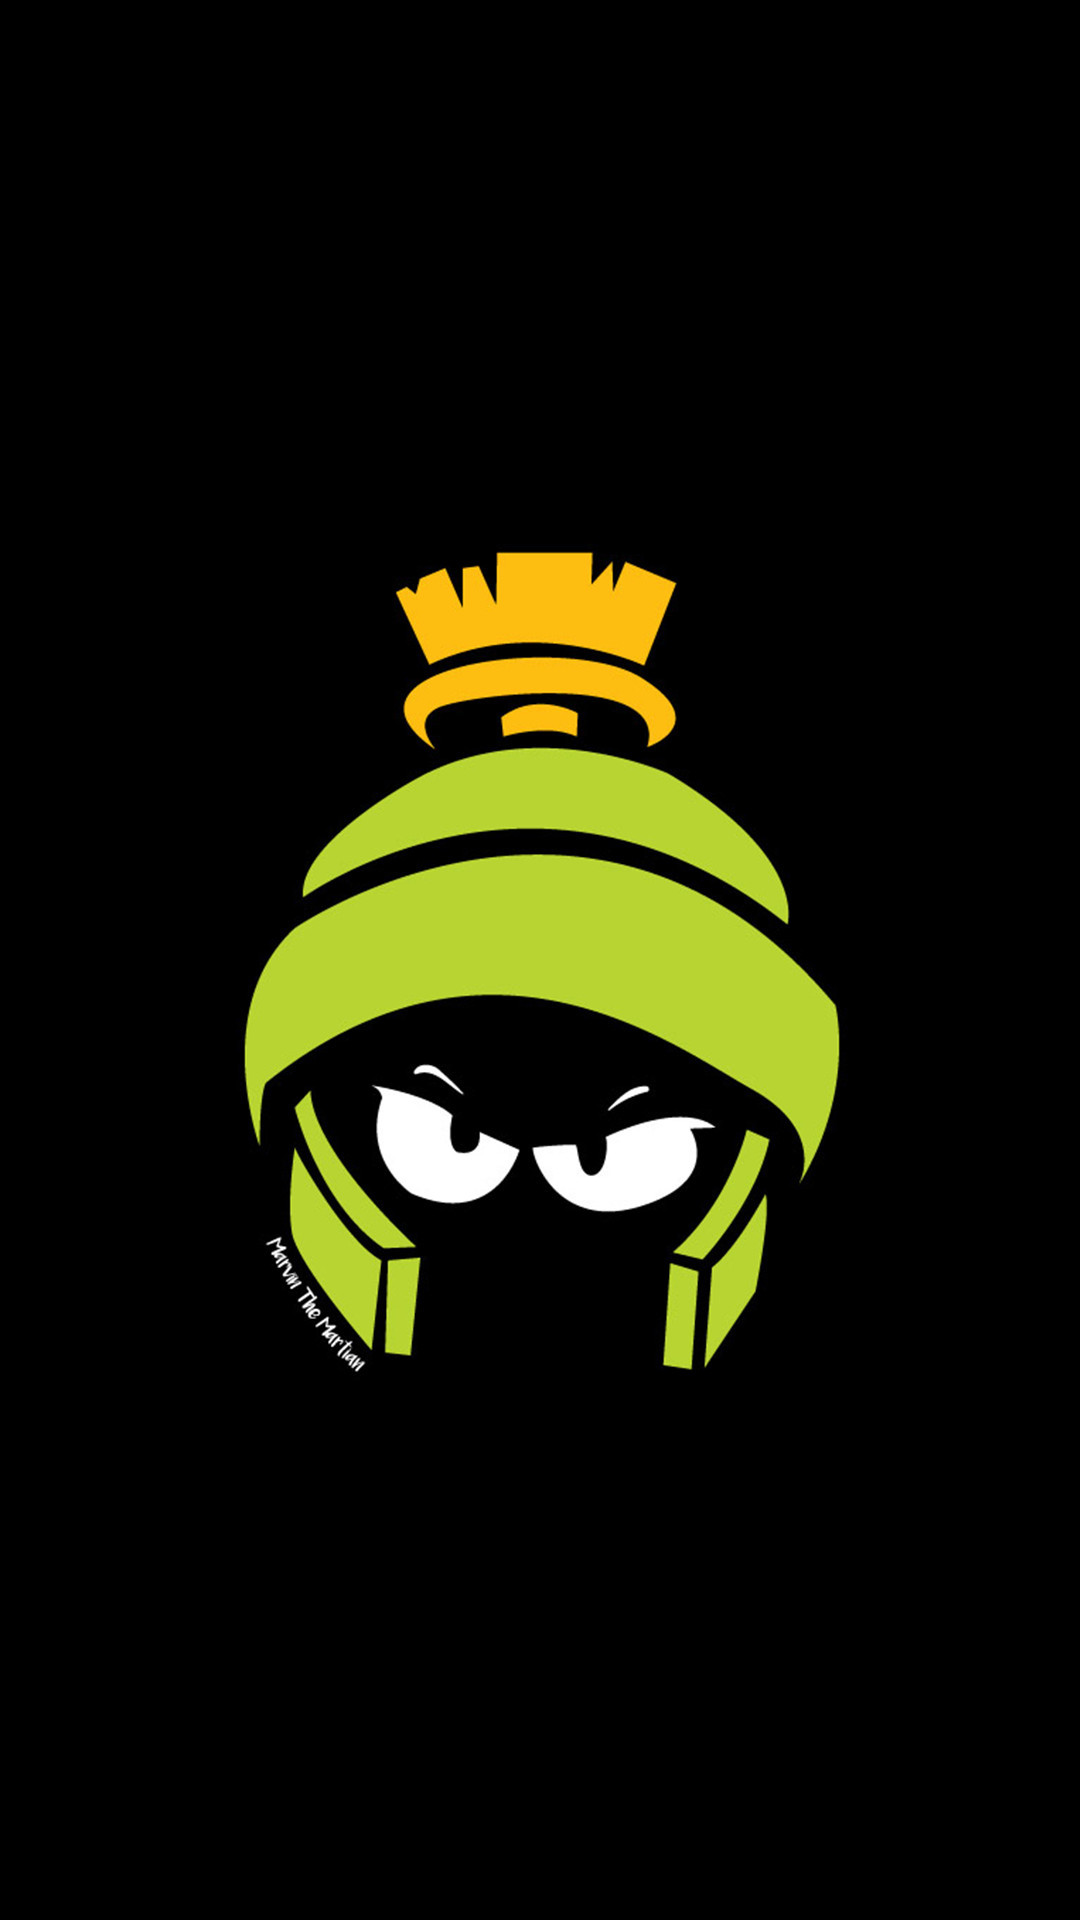 Marvin The Martian Wallpaper For Iphone Cool Cartoon Gangster Wallpapers 183 ① Wallpapertag